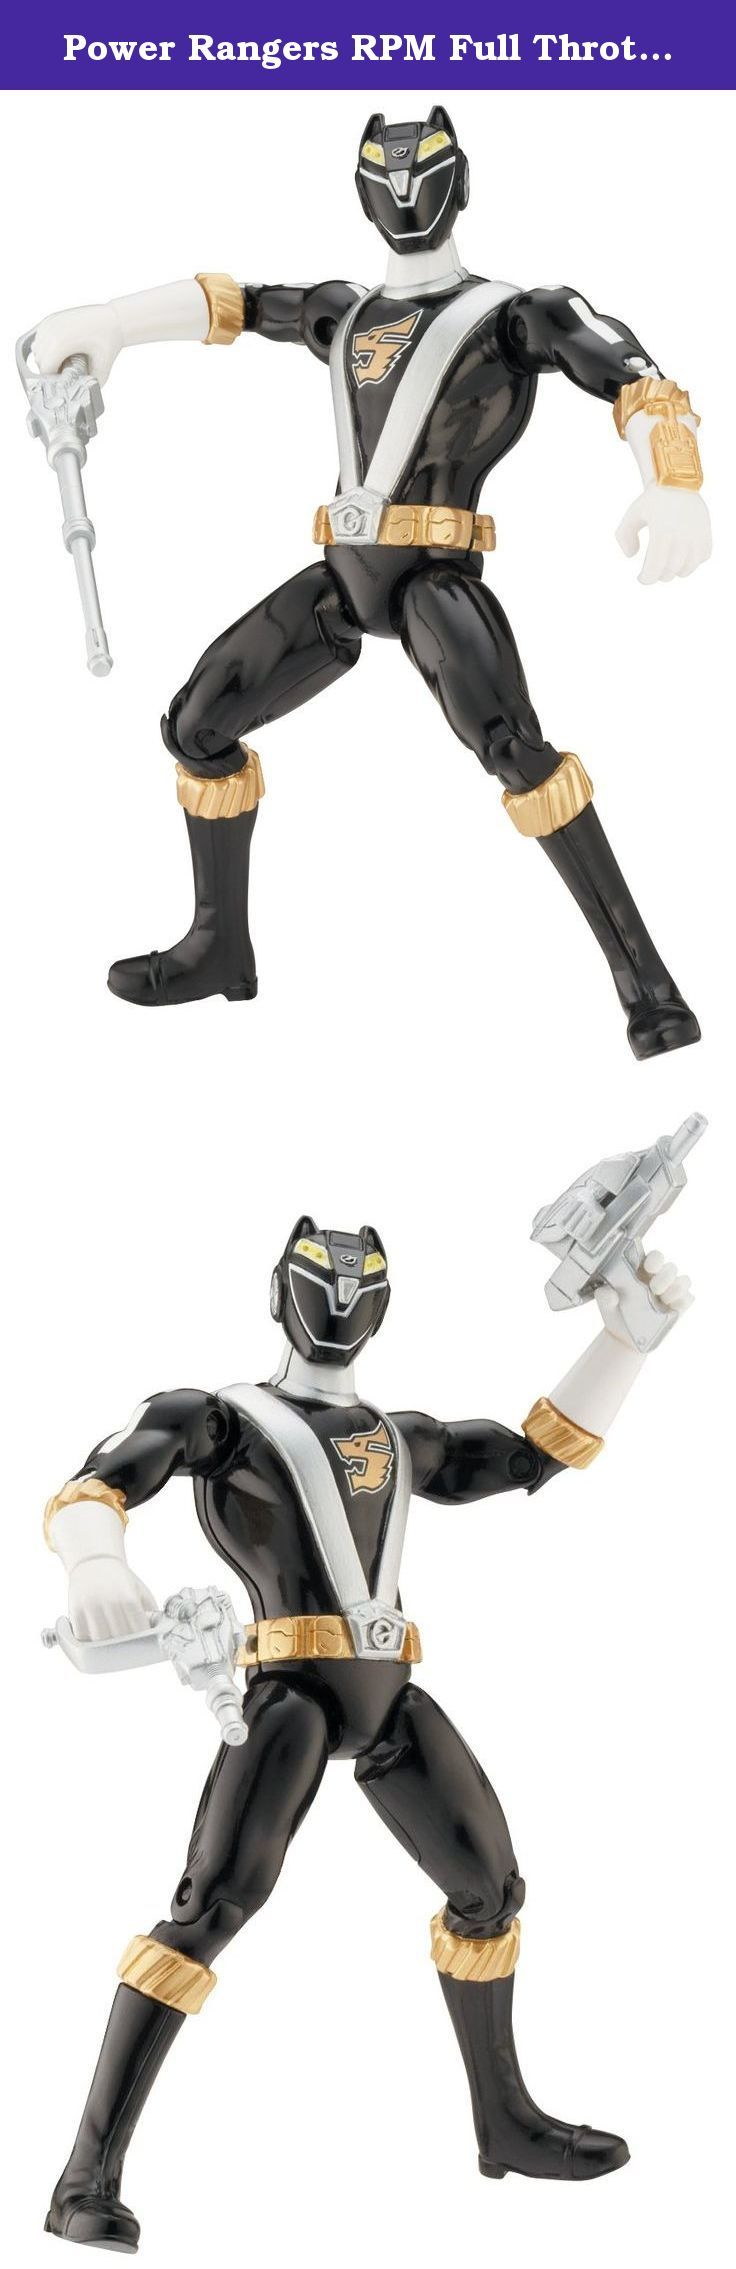 Power Rangers RPM Full Throttle Wolf Ranger. Power Rangers RPM Full Throttle Wolf Ranger Figure.